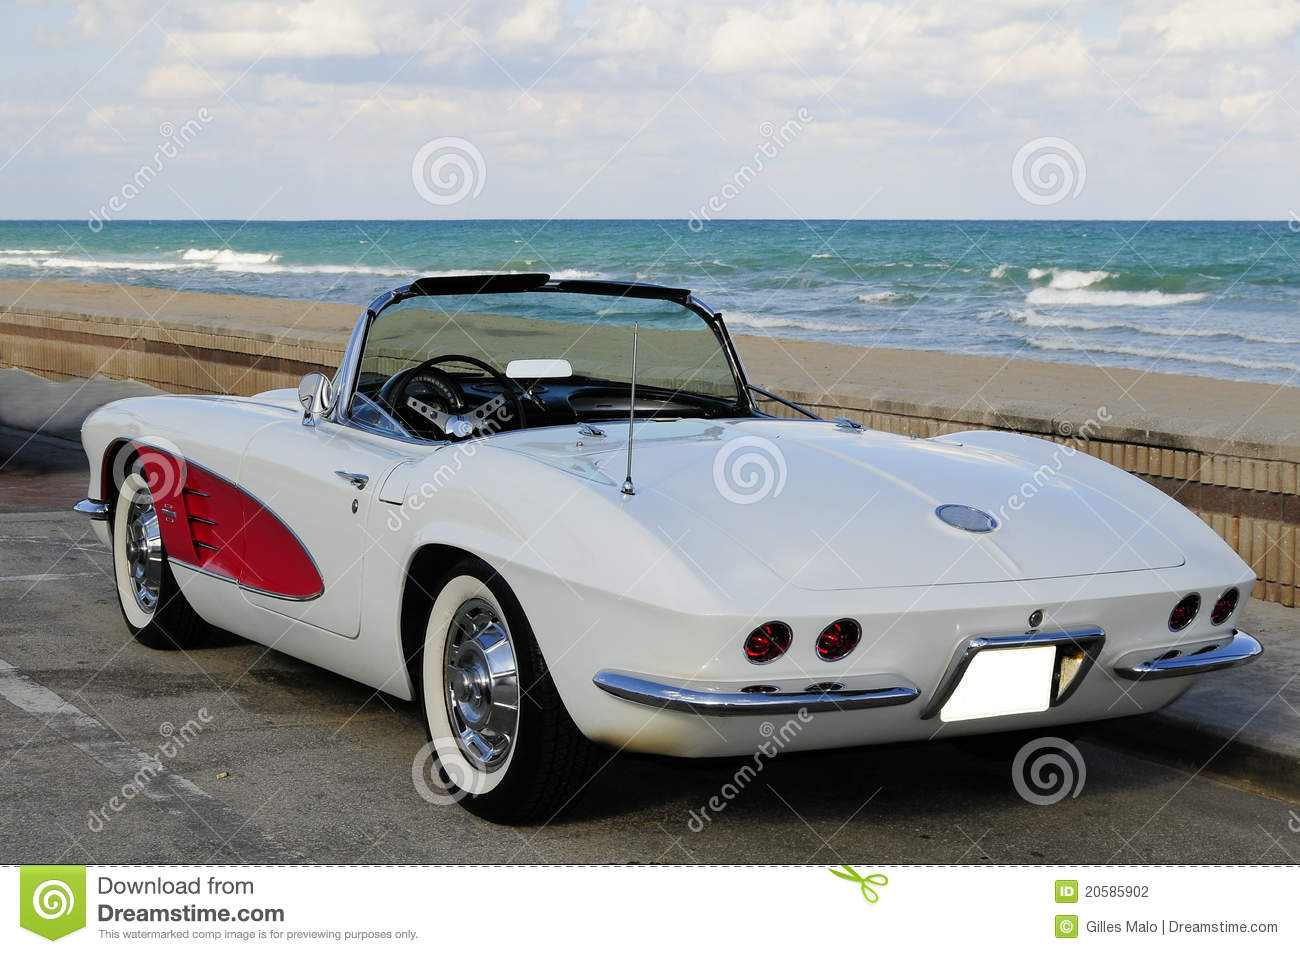 Vintage Sports Car Stock Photography  Image: 20585902